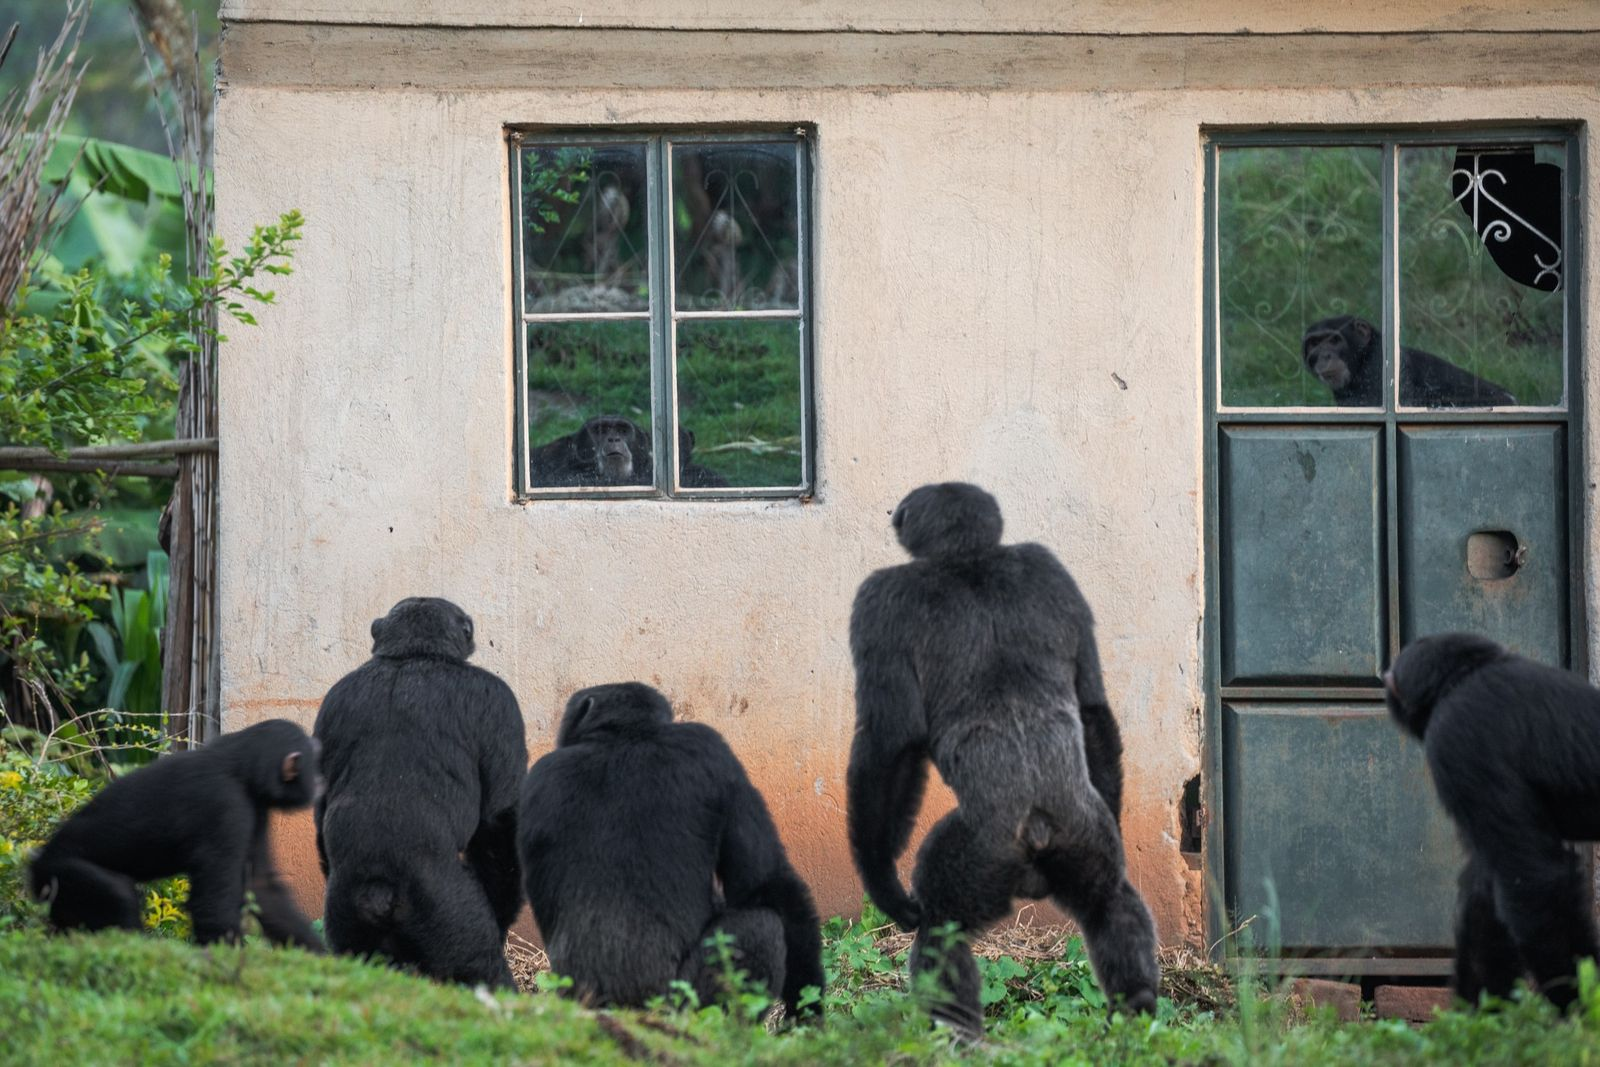 In July 2014, a large chimp snatched and killed a toddler named Mujuni Semata outside the ...